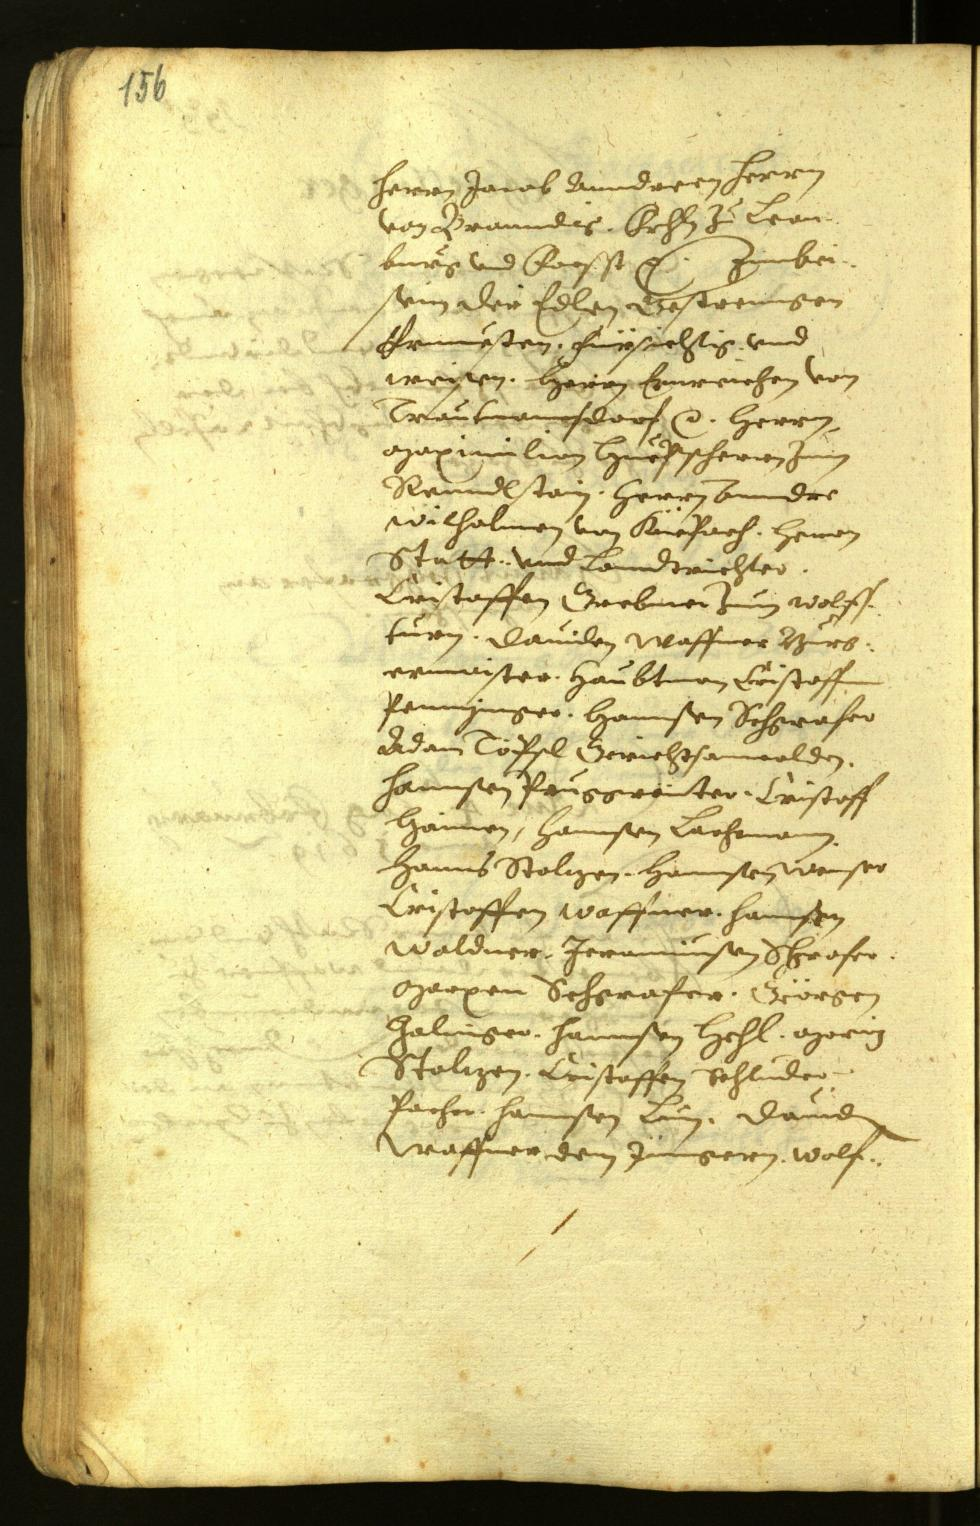 Civic Archives of Bozen-Bolzano - BOhisto Minutes of the council 1619